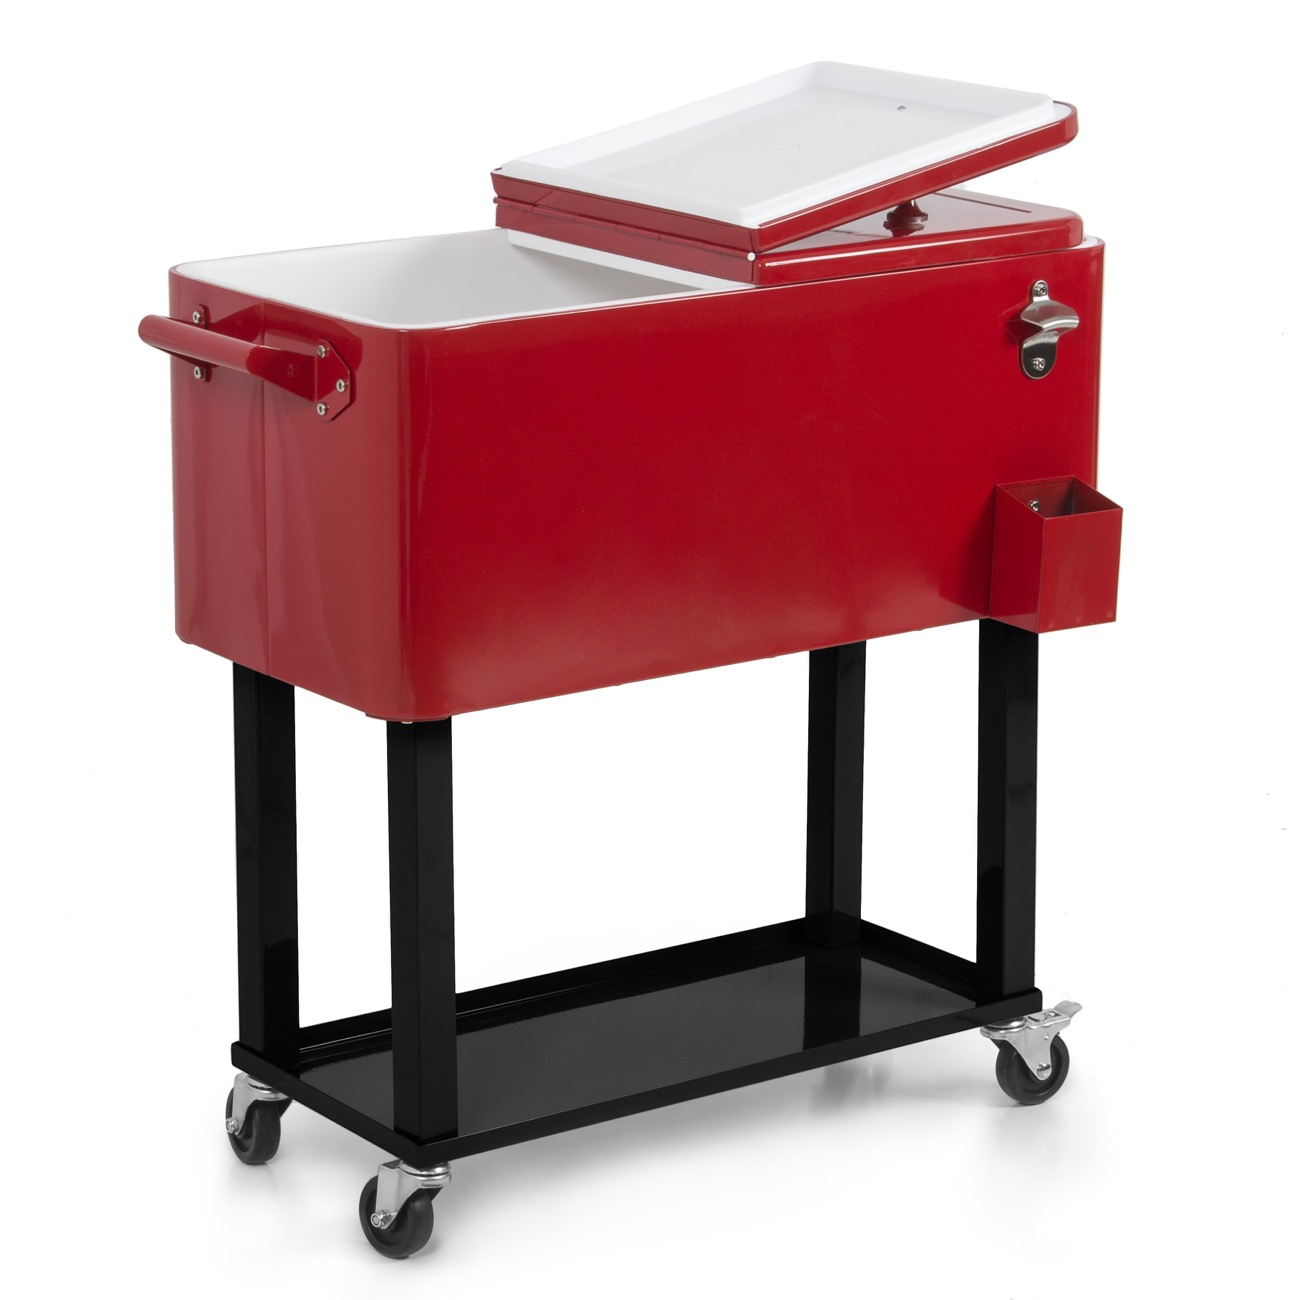 Belleze Rolling Ice Chest Portable Patio Drink Party Cooler Cart, 80-Quart Outdoor with Wheel, Red